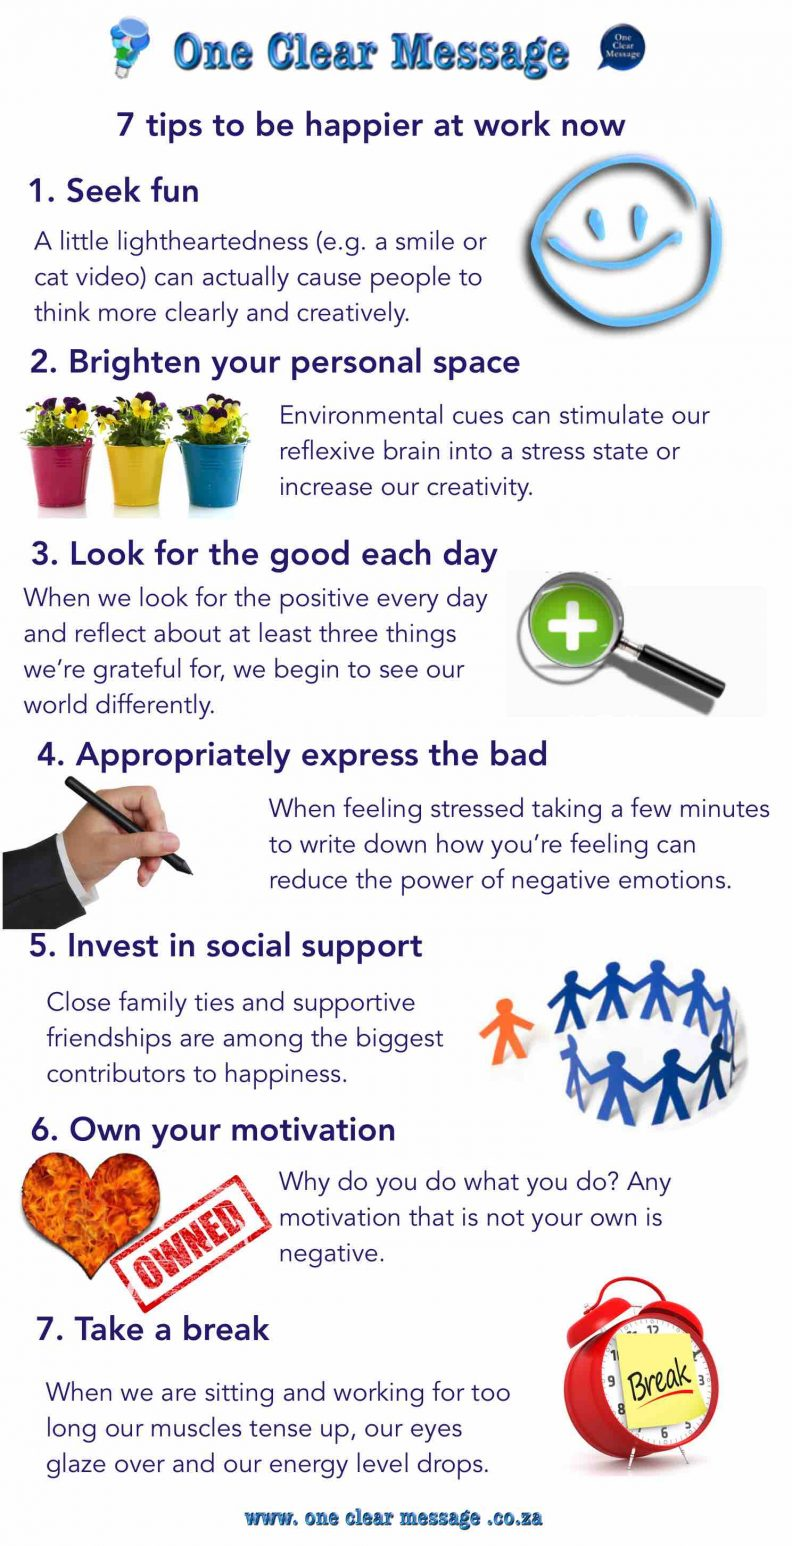 7 tips to be happier at work now Infographic